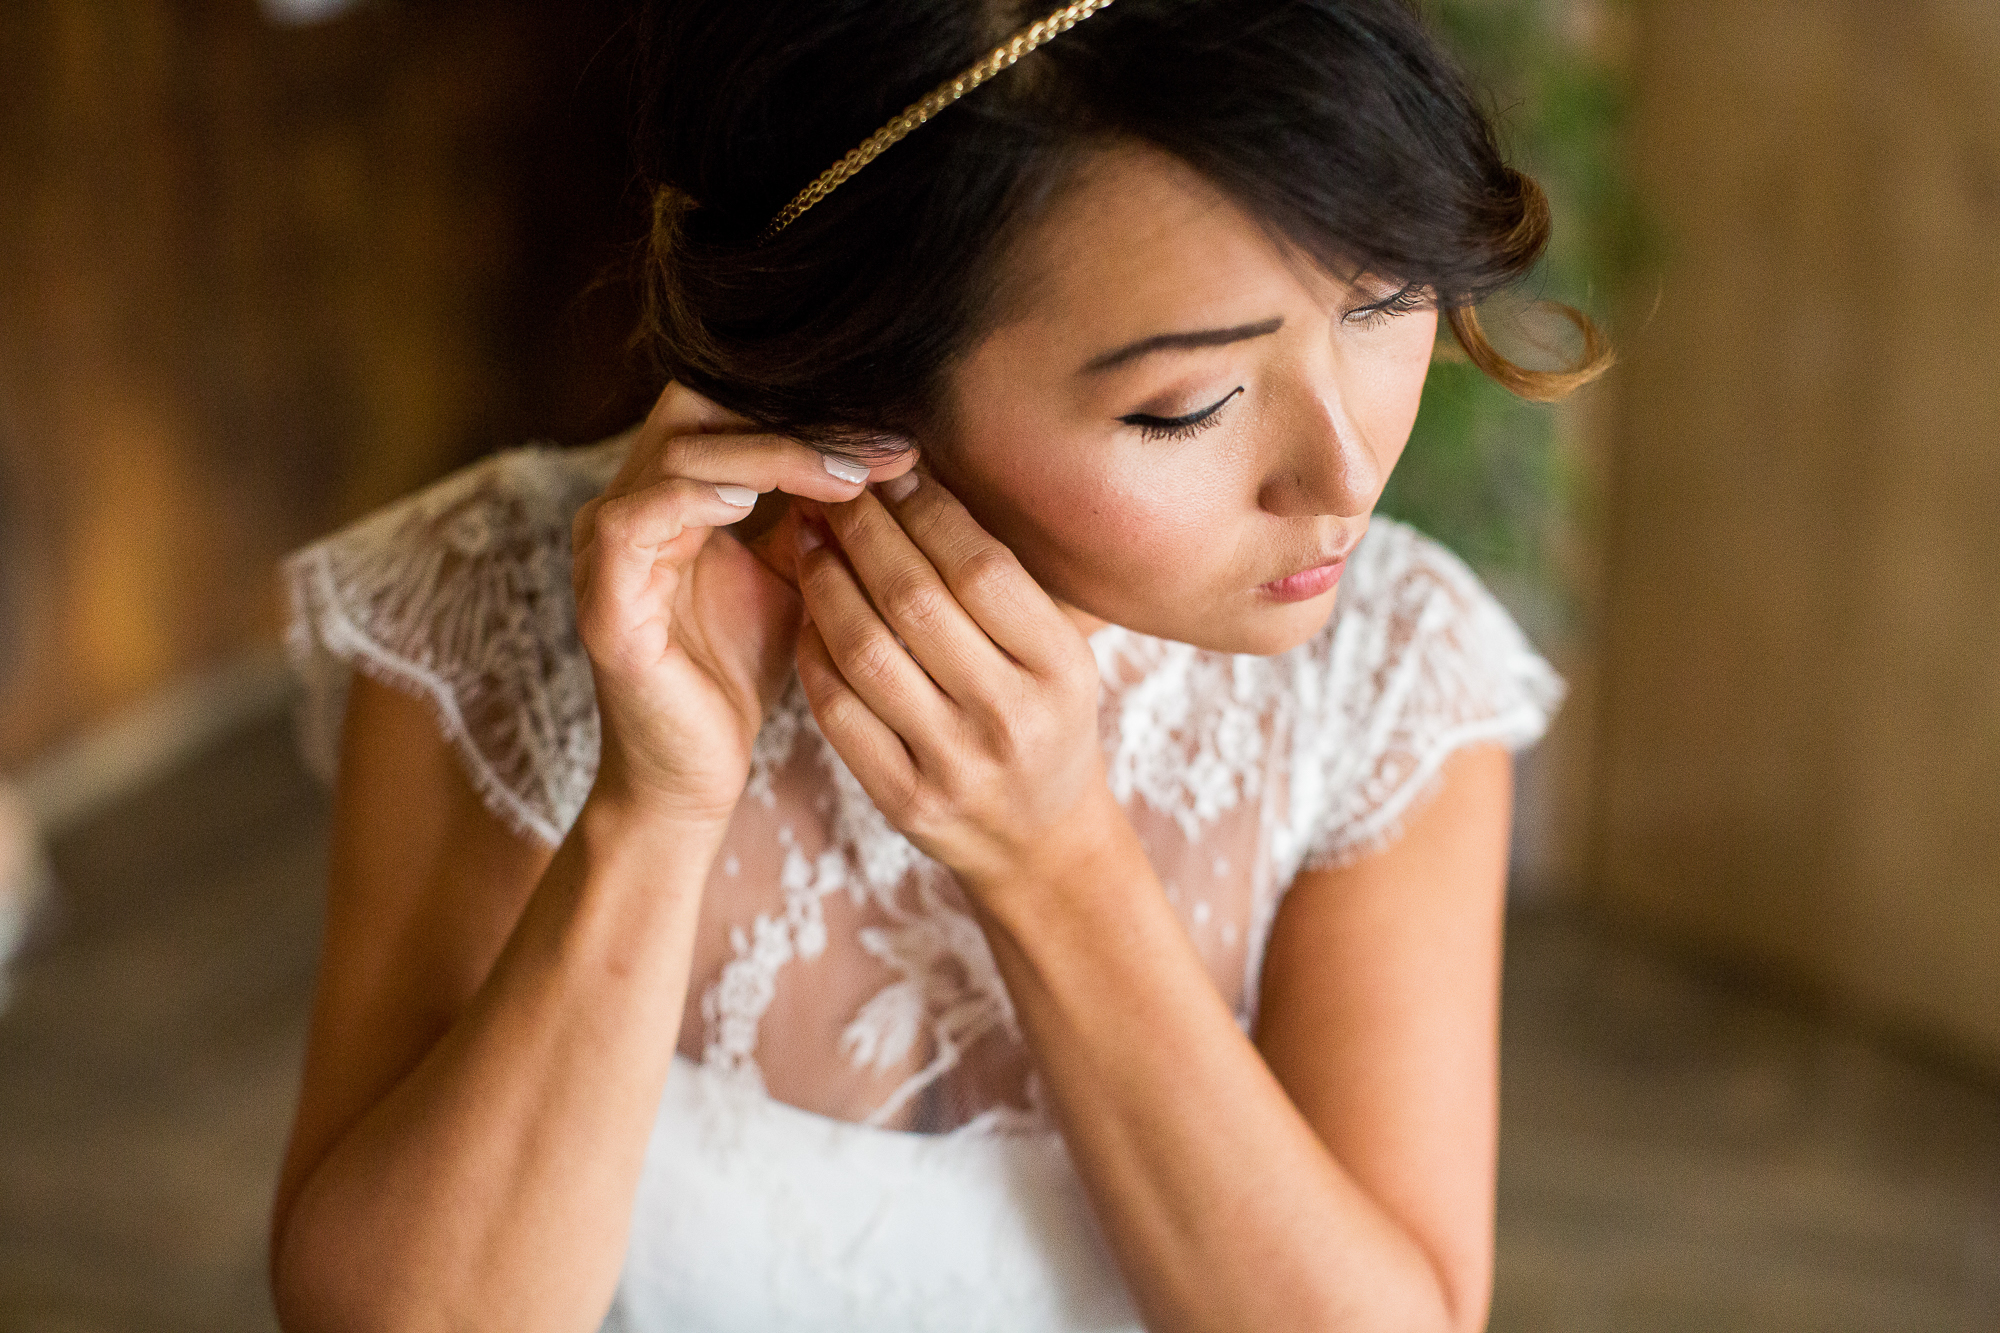 Luxemburg, Hochzeit, getting ready, bride, hair and make up, earrings, jewellery, excitement, love, wedding day